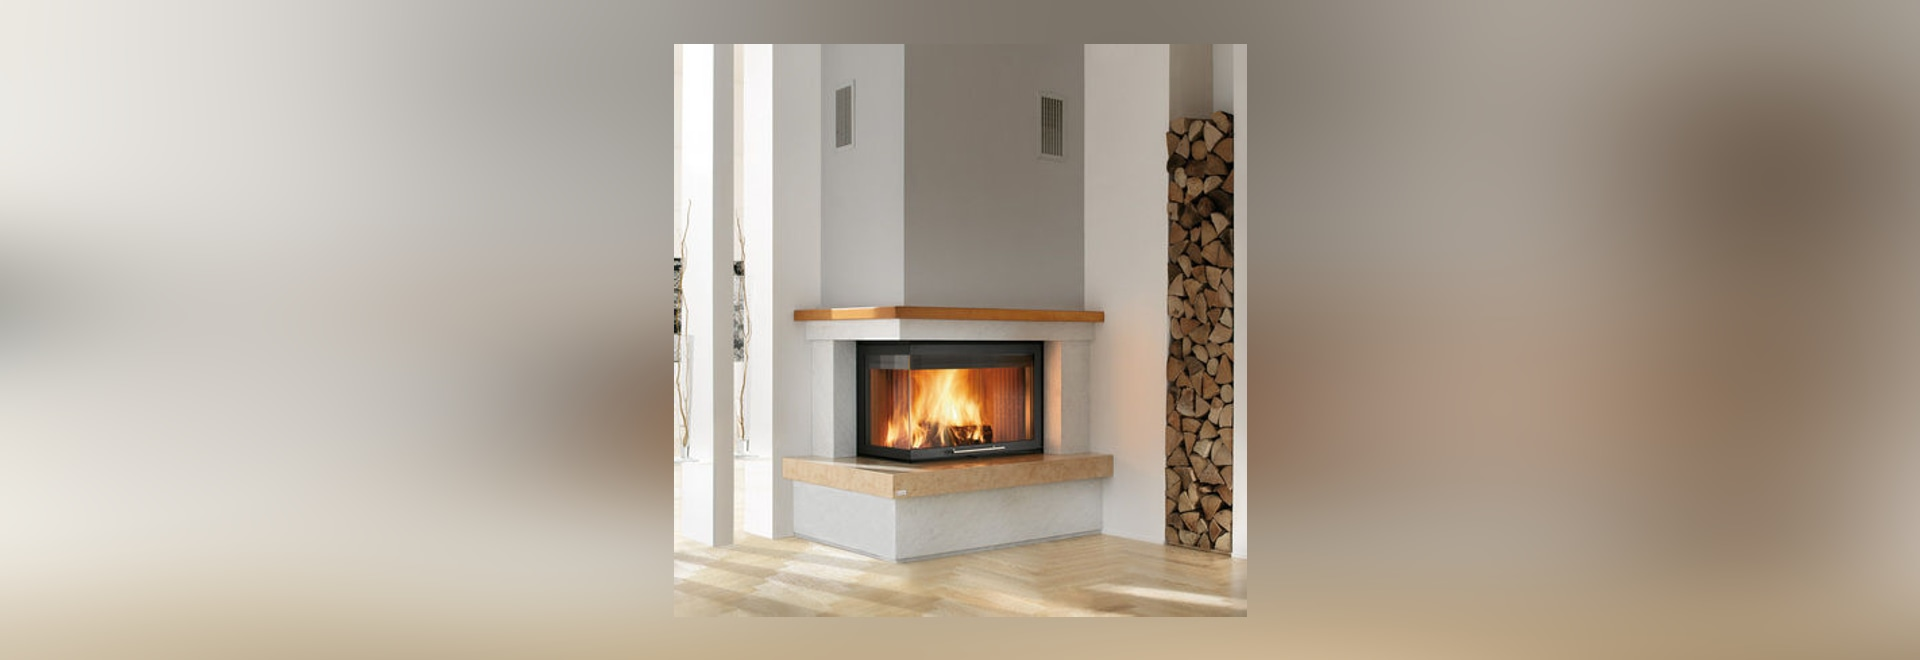 new contemporary fireplace mantel by caminetti montegrappa